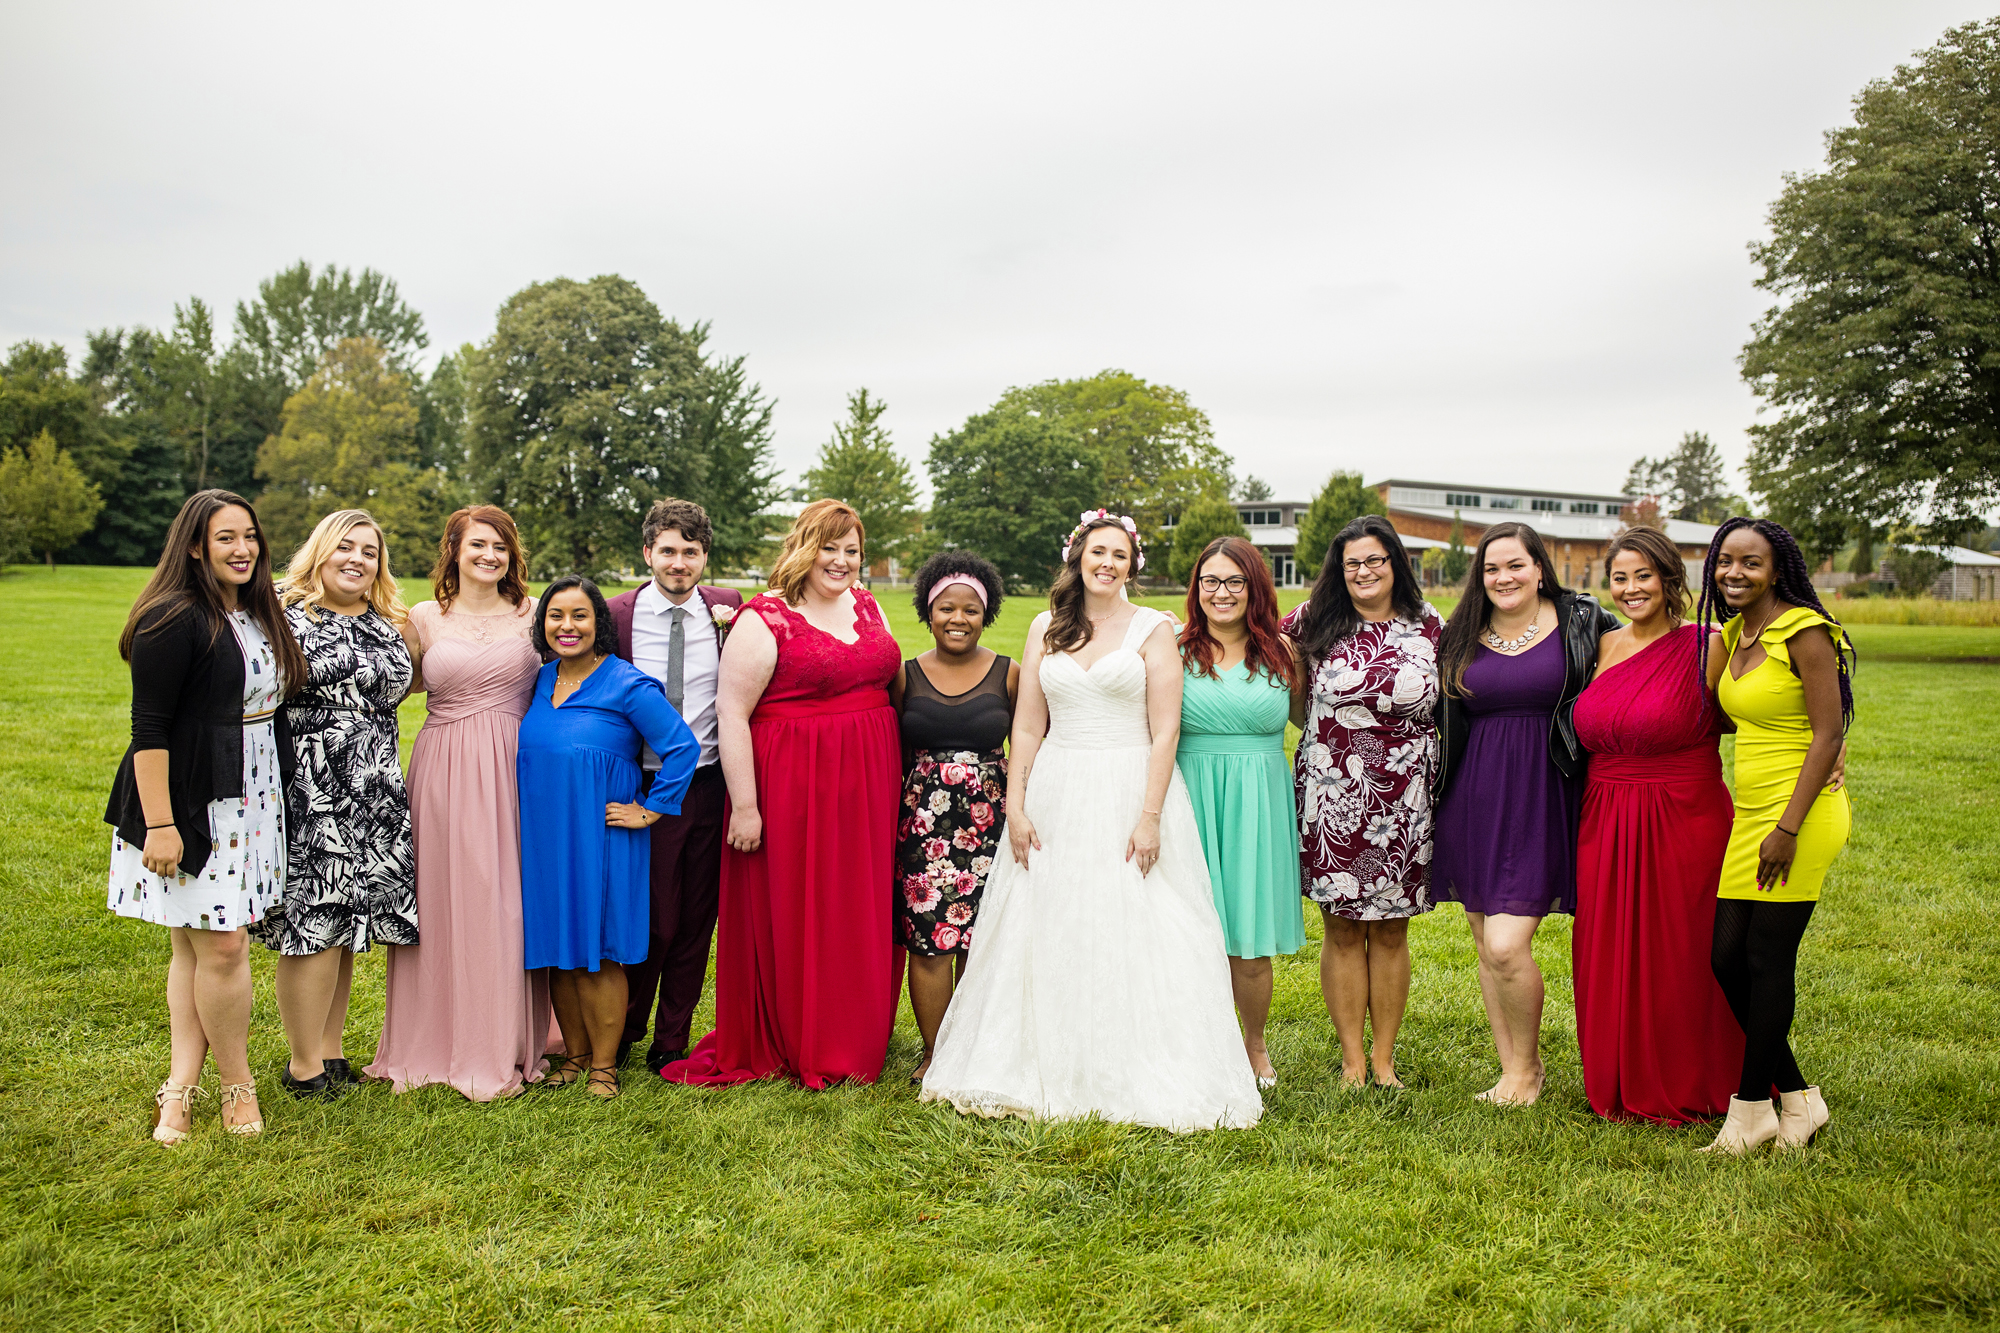 Seriously_Sabrina_Photography_Lisle_Illinois_Morton_Arboretum_Wedding_Day_Gowen121.jpg